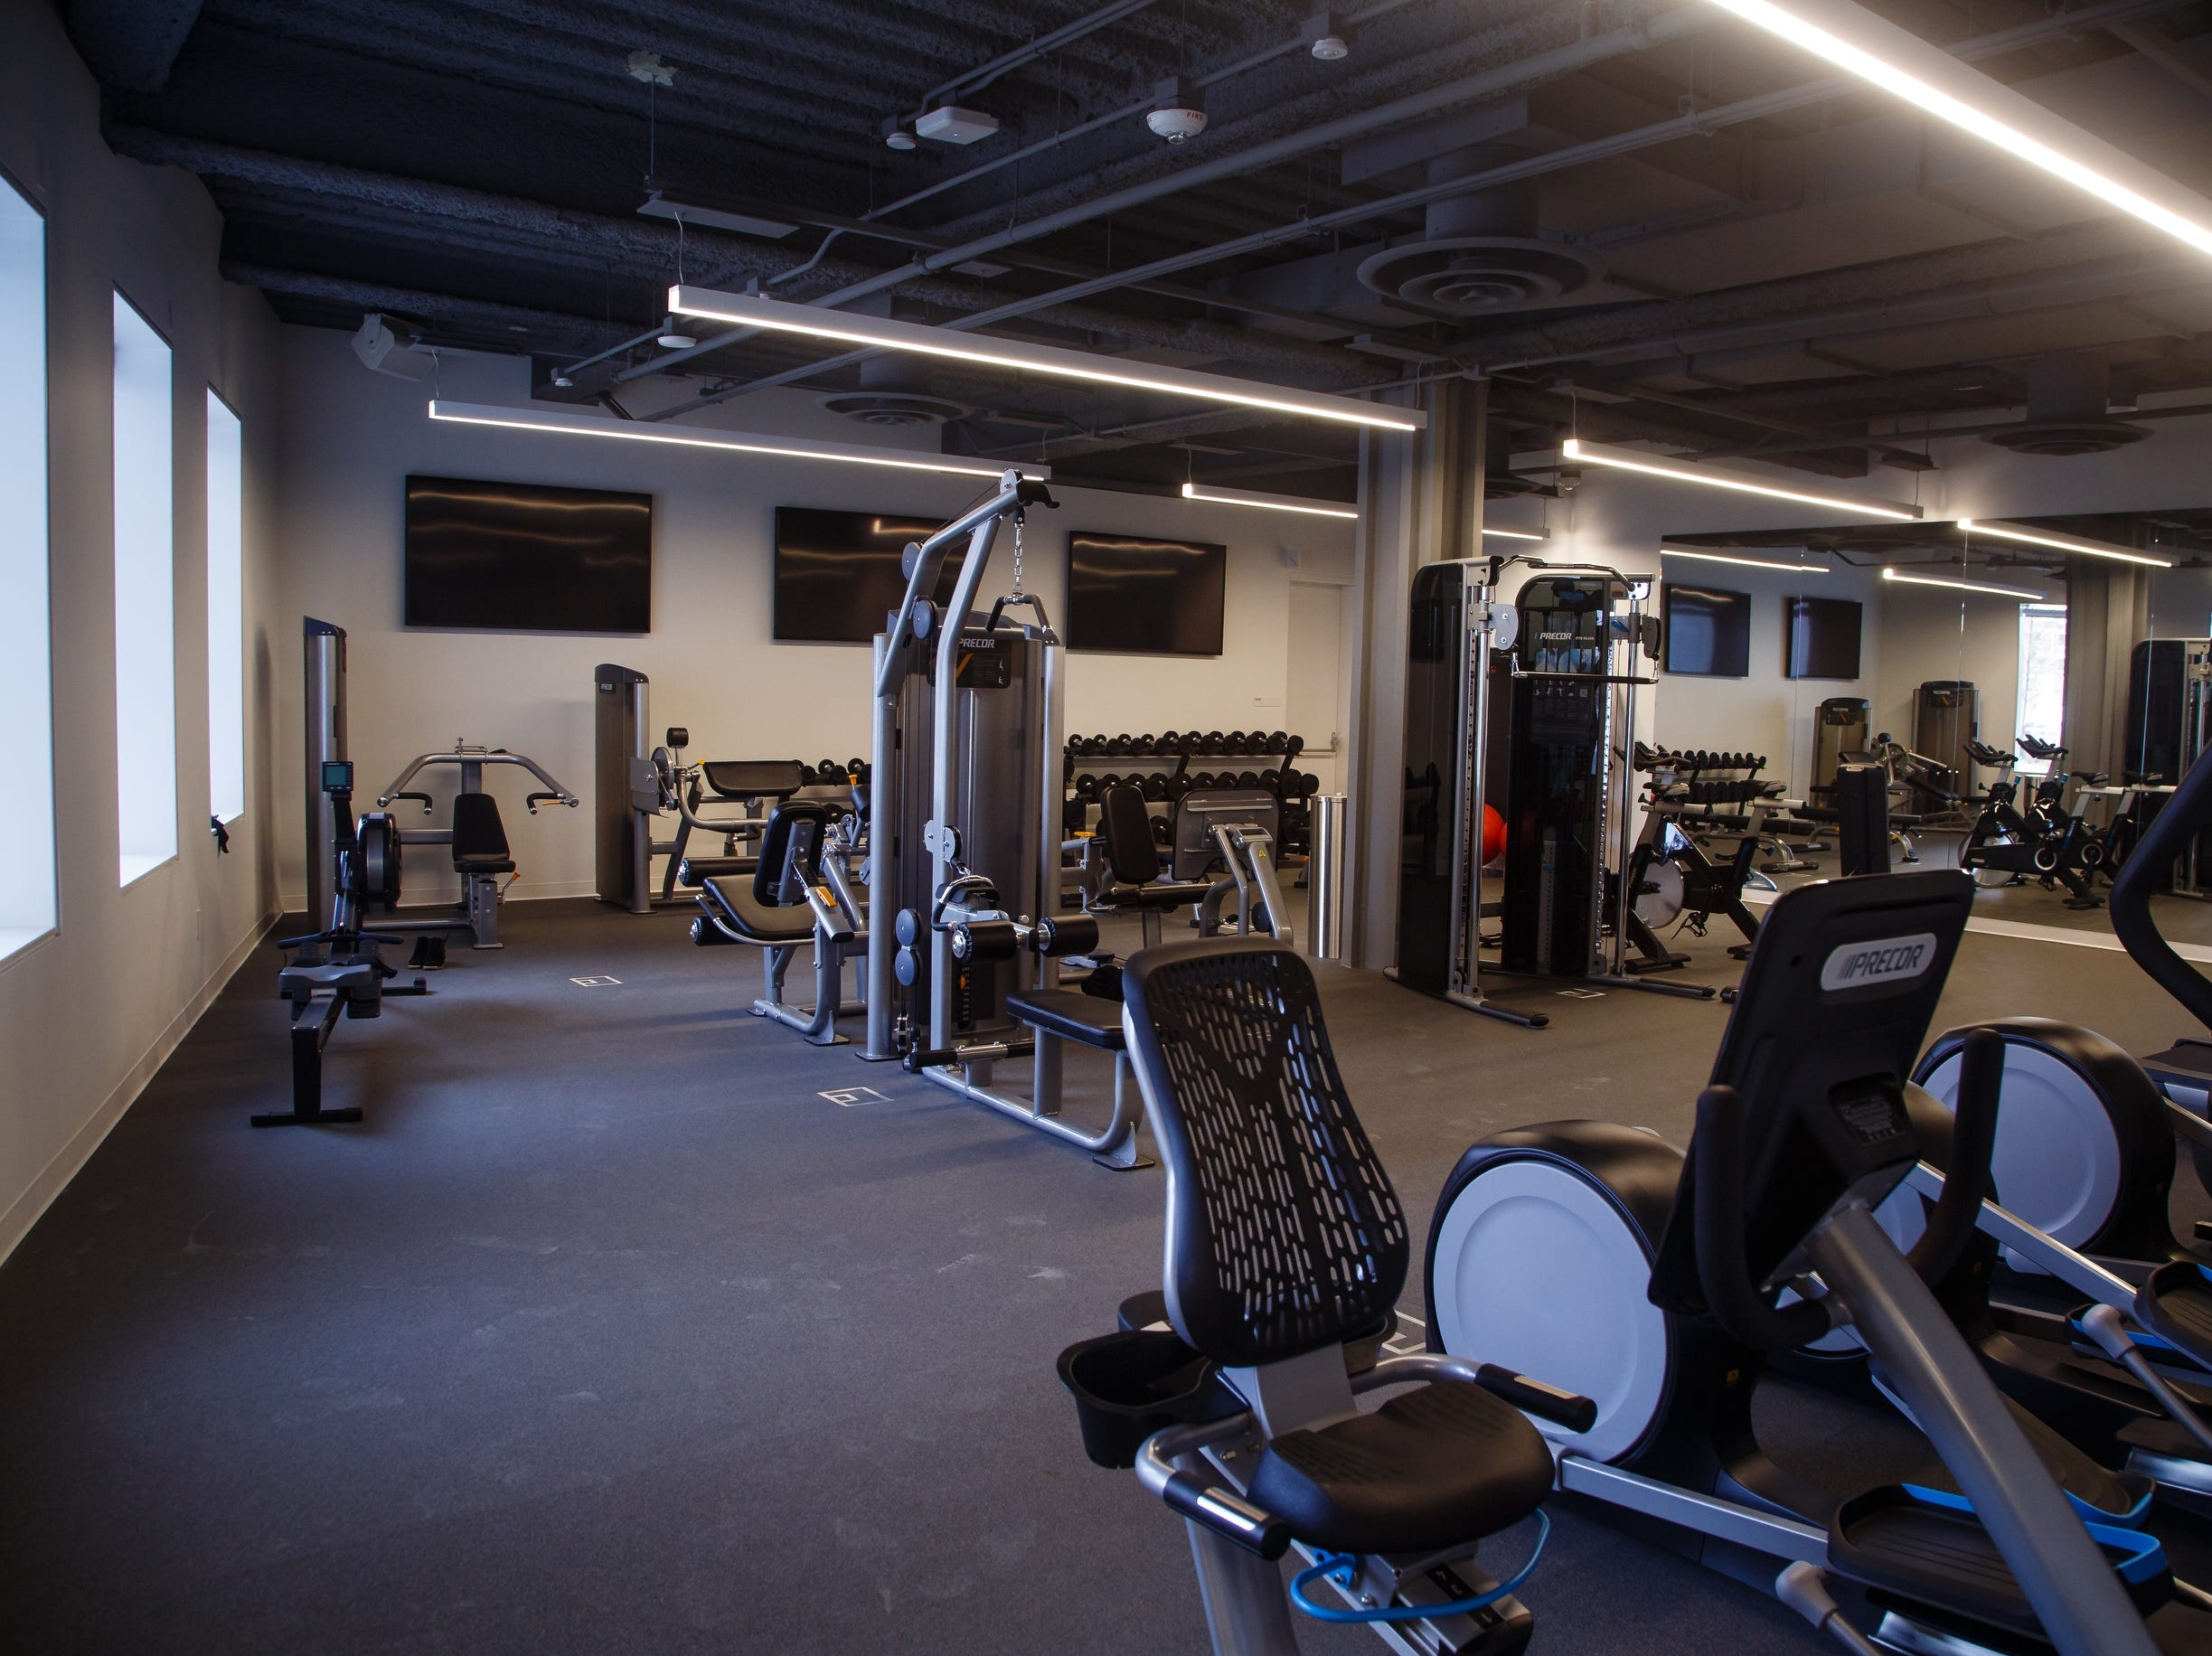 The fitness center inside the new Krause Gateway Center downtown on Friday, Nov. 9, 2018, in Des Moines.